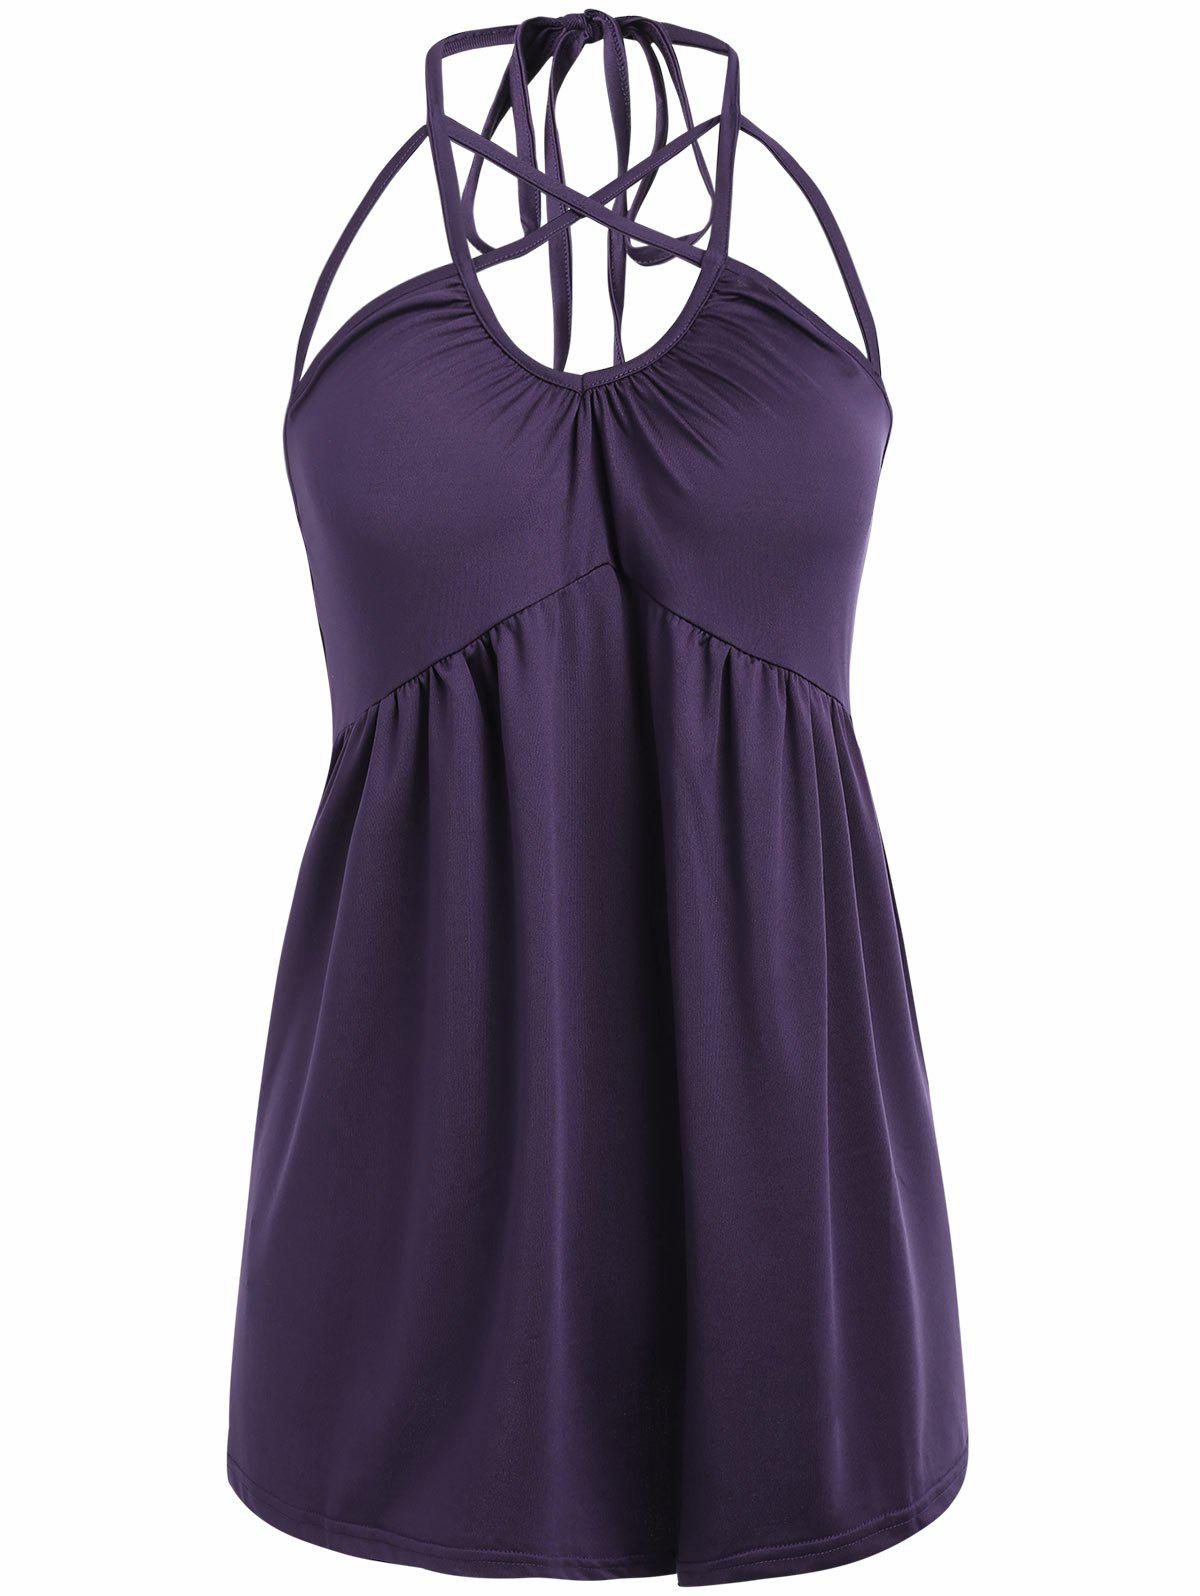 Strappy Sleeveless Halter Top - PLUM PURPLE S